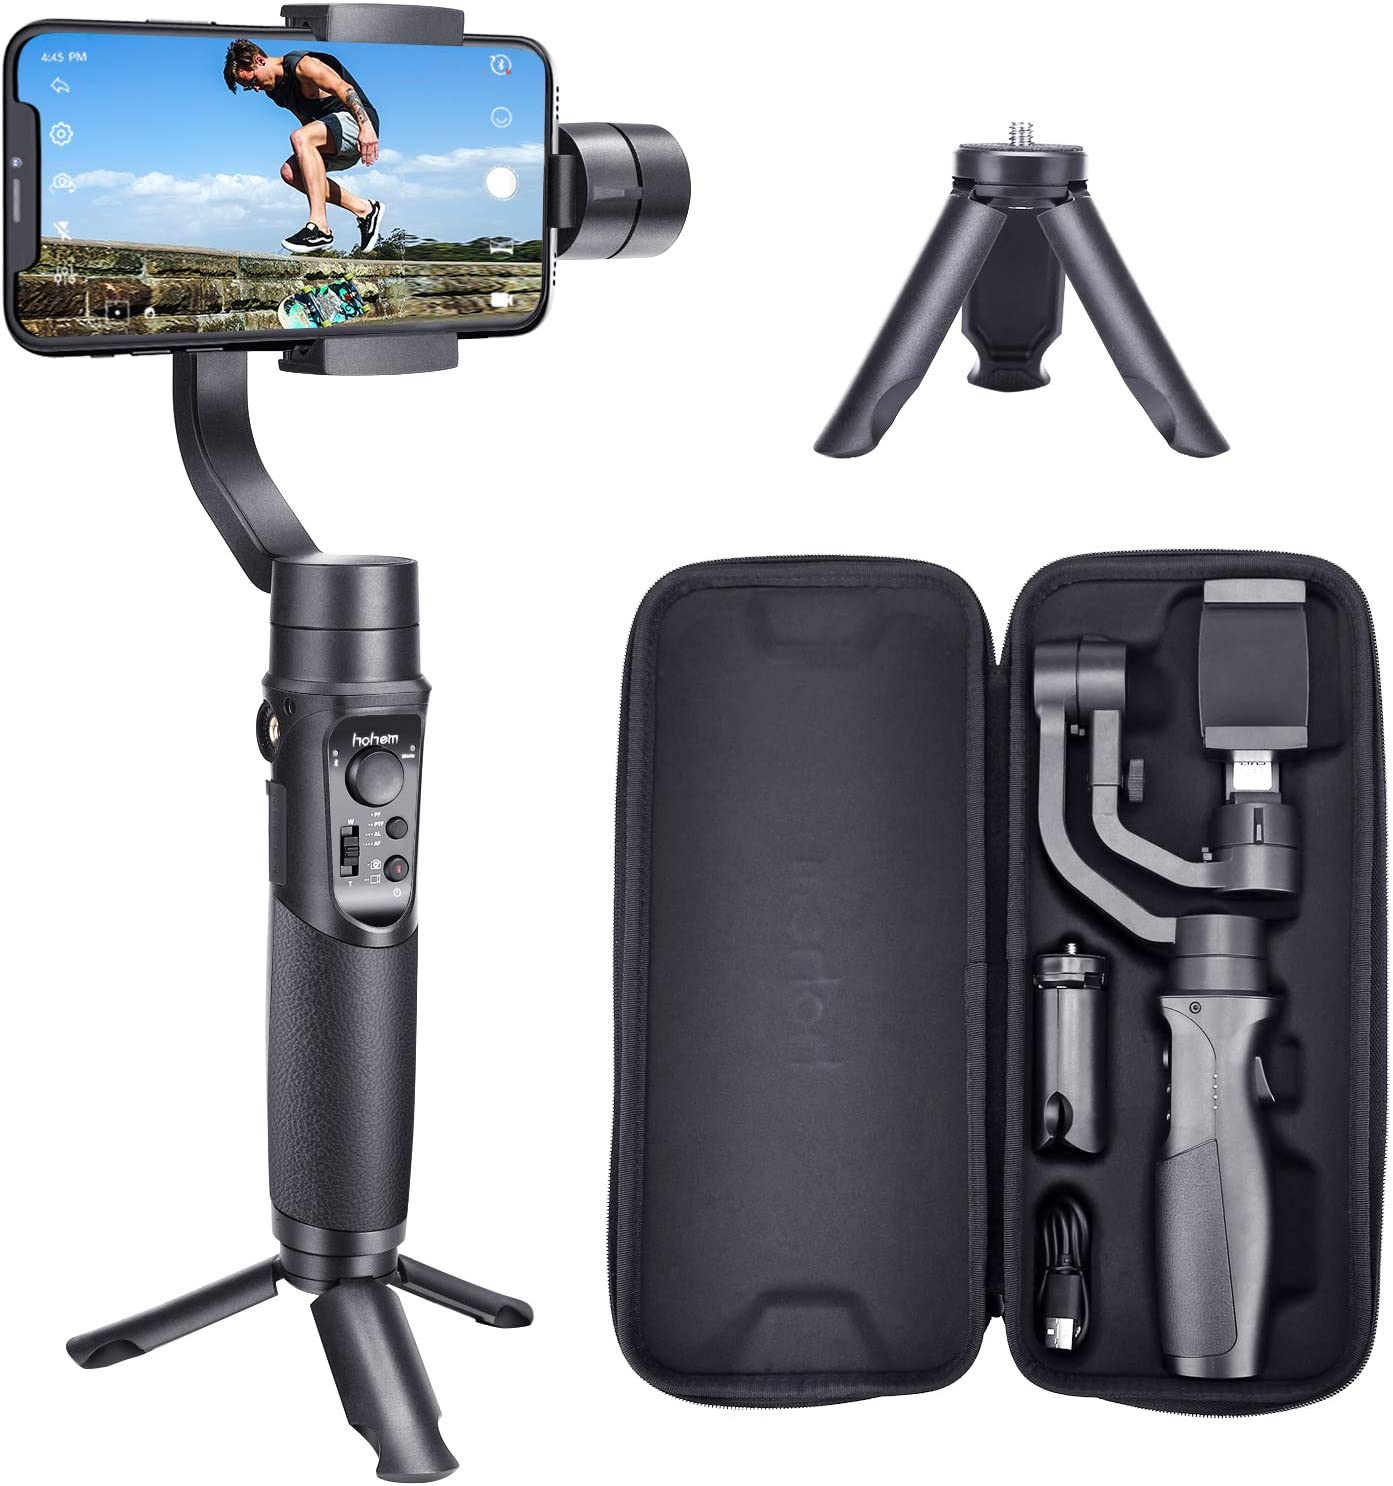 Amazon Com Hohem Isteady Mobile The 3 Axis Gimbal Stabilizer Compatible With Iphone 12 Pro 11 Xs Android Smartphones Supports W 600 Roll Inception Camera Photo